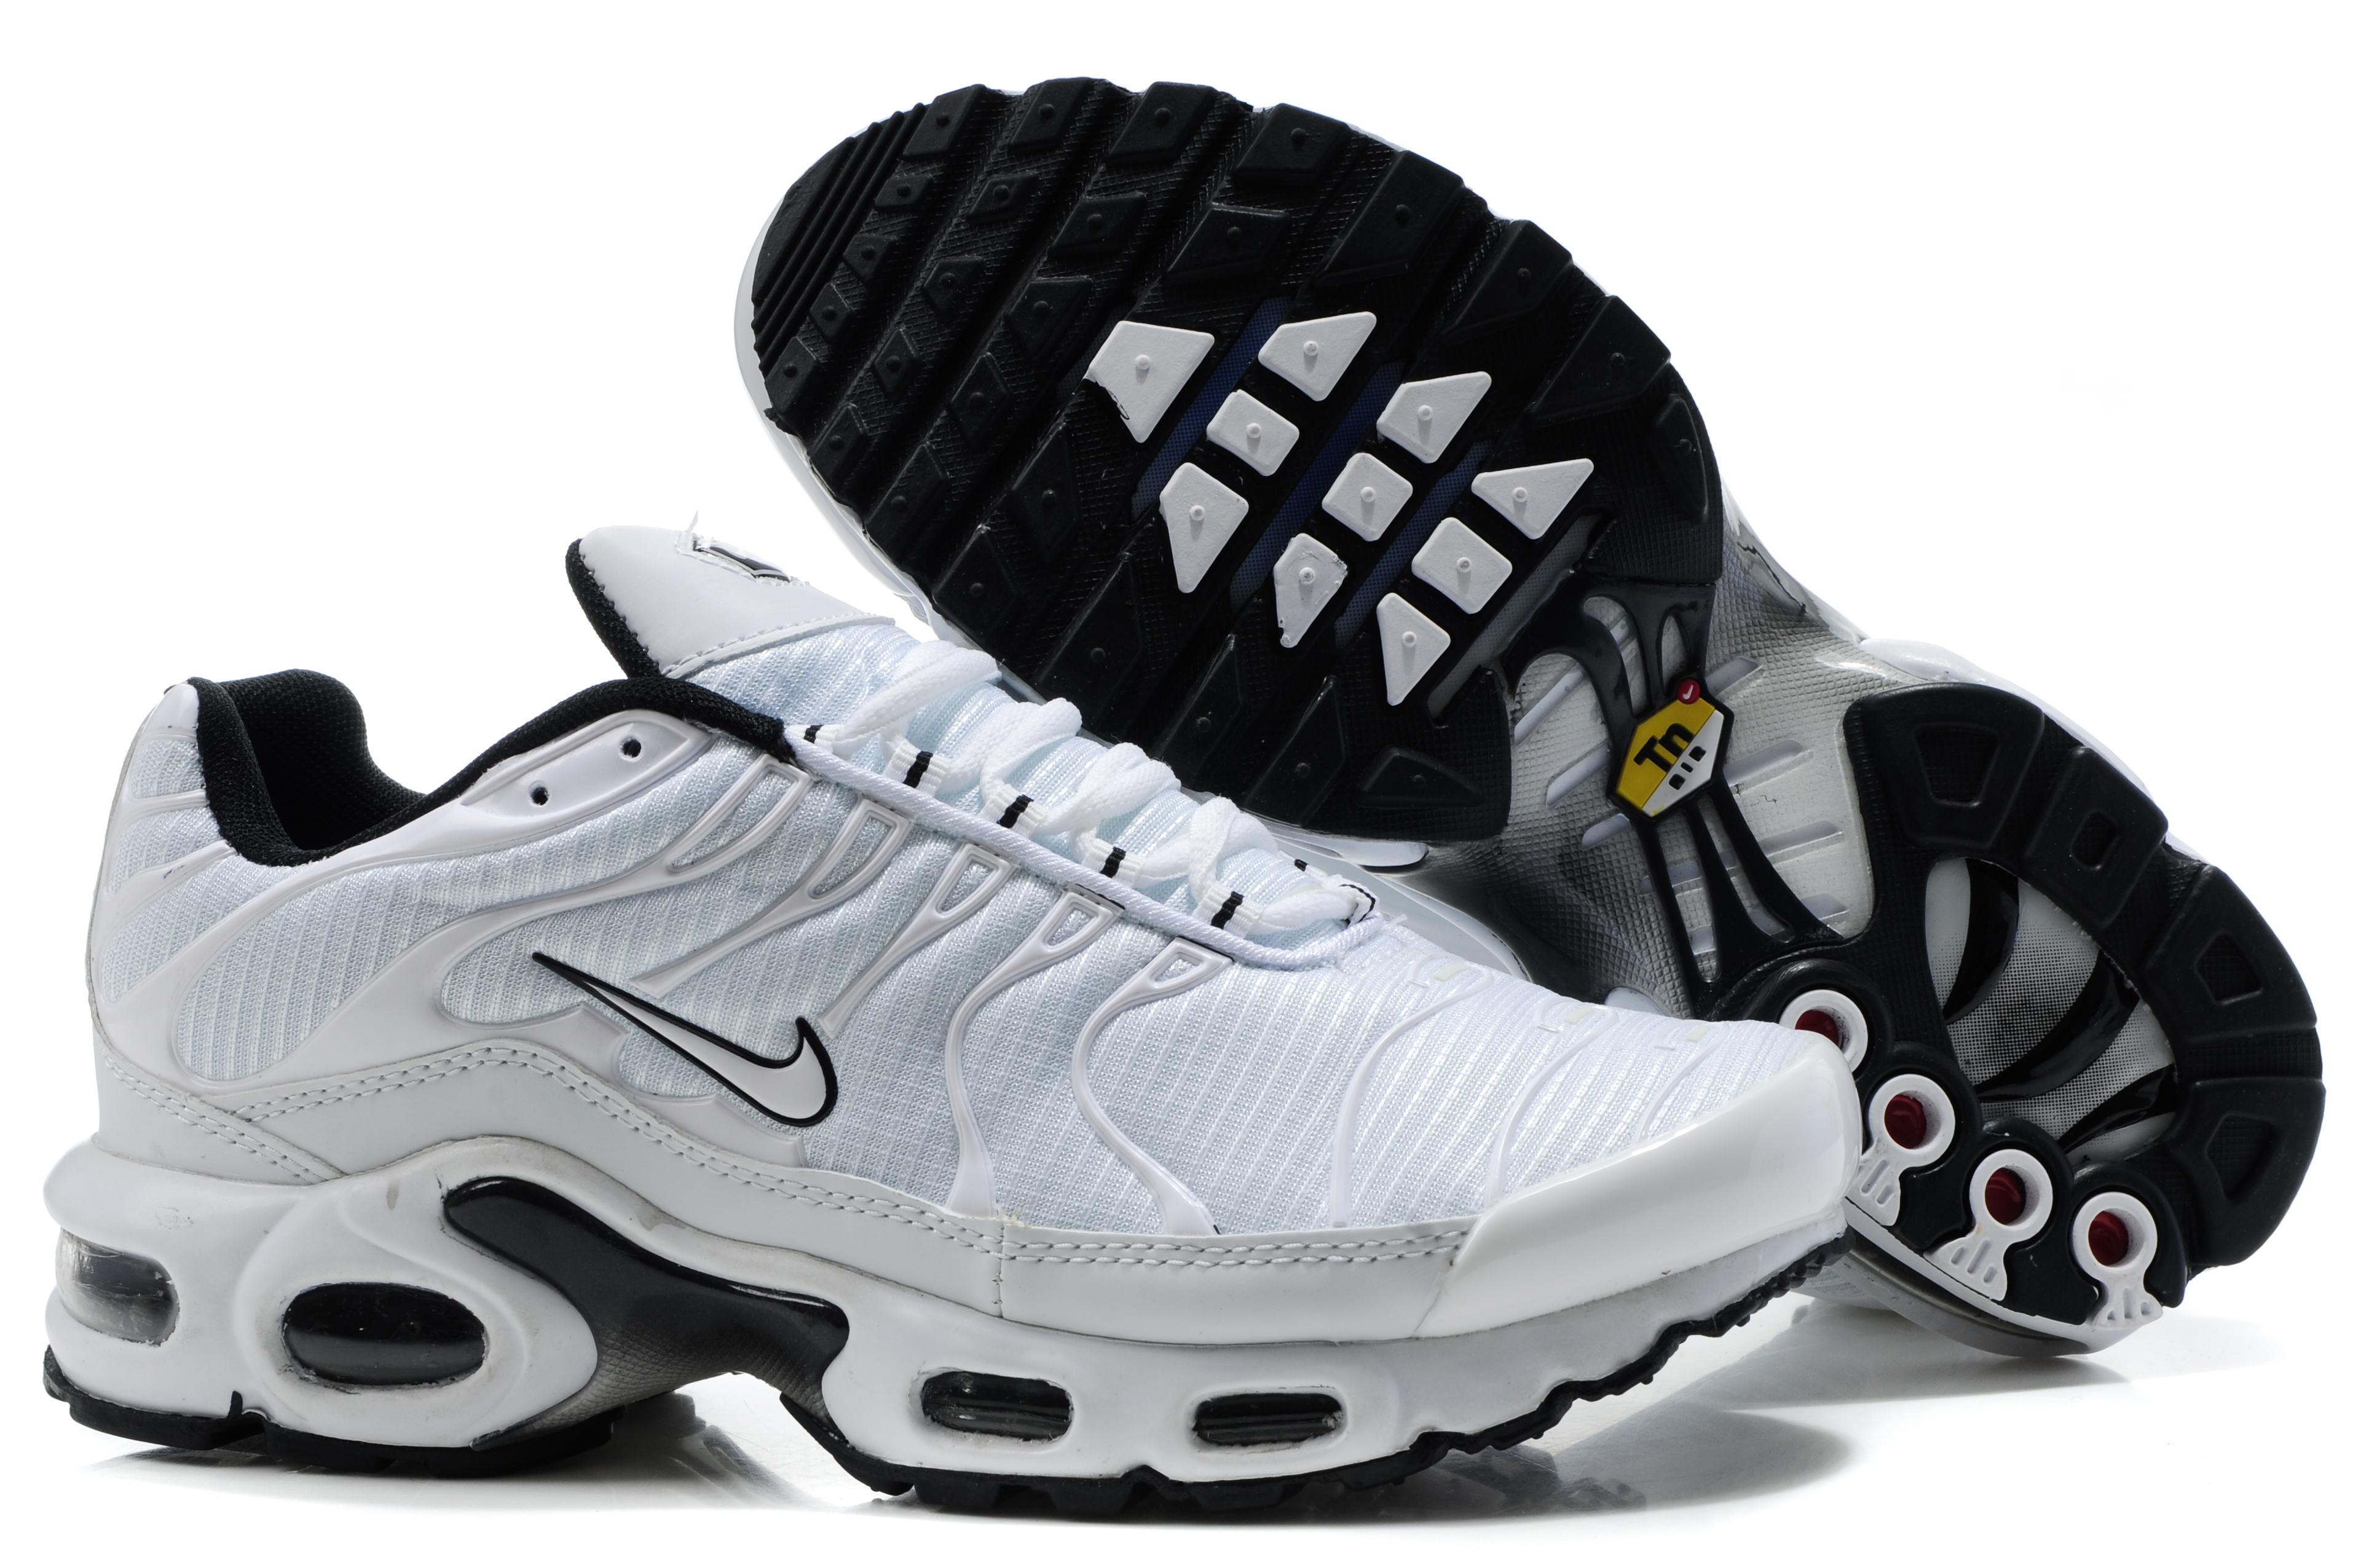 nike tn requin chaussure,achat vente chaussures baskets